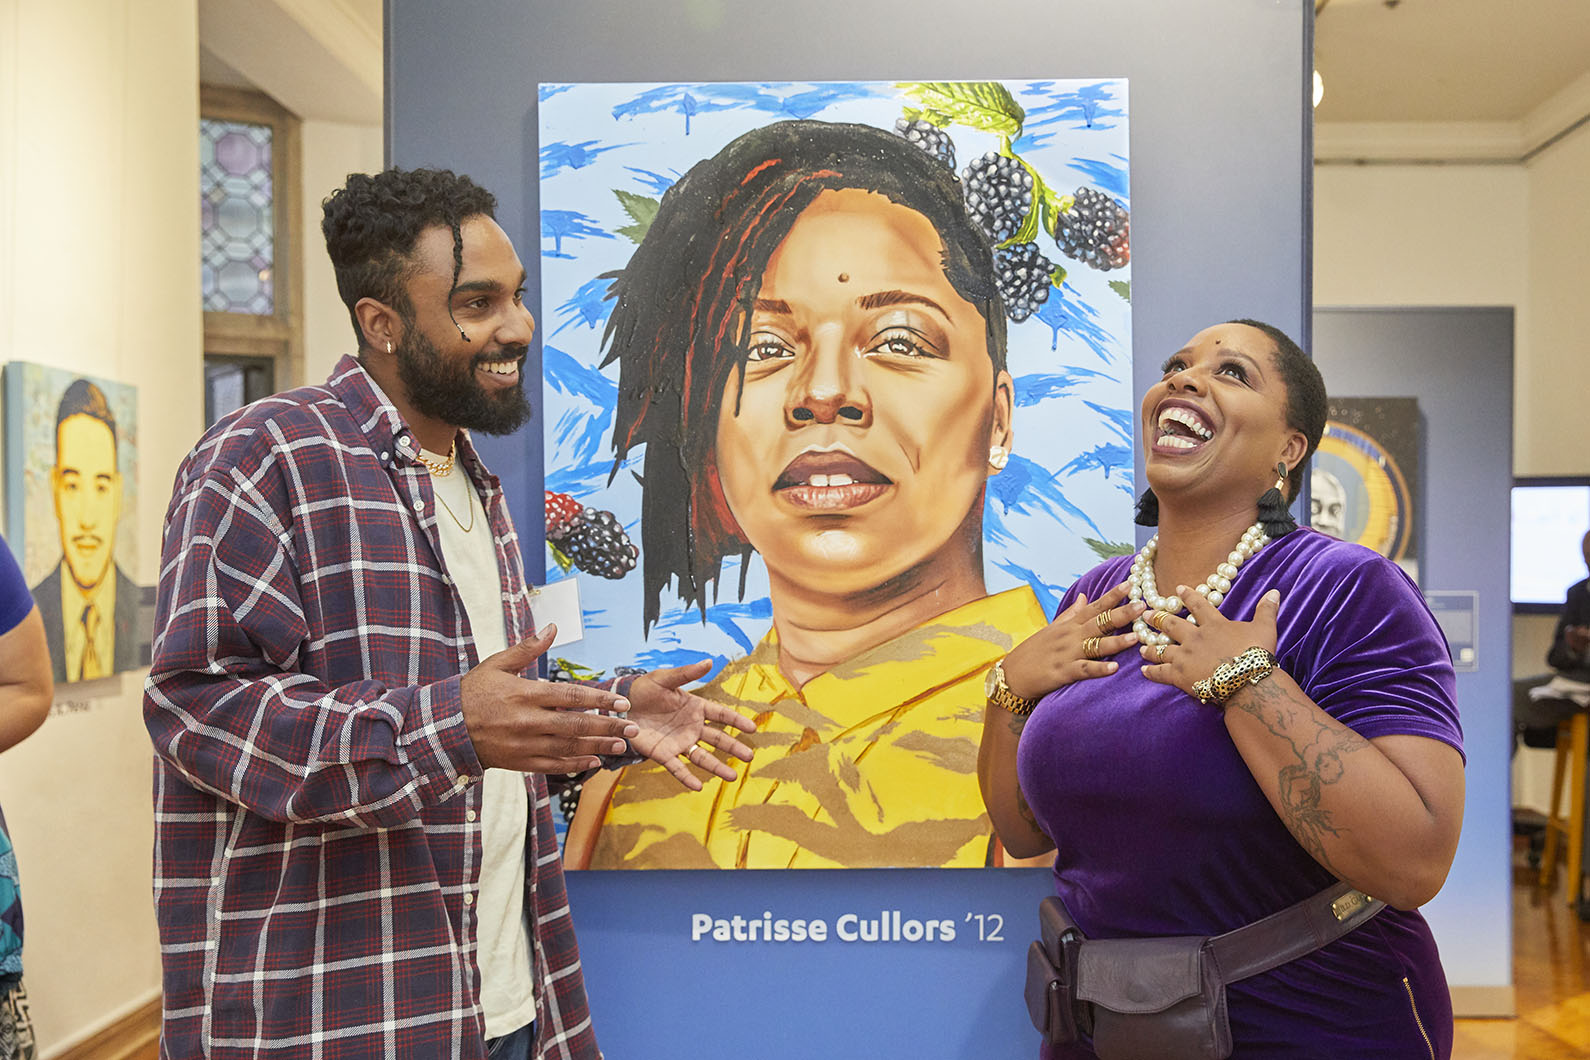 Gabe Gault and Patrisse Cullors